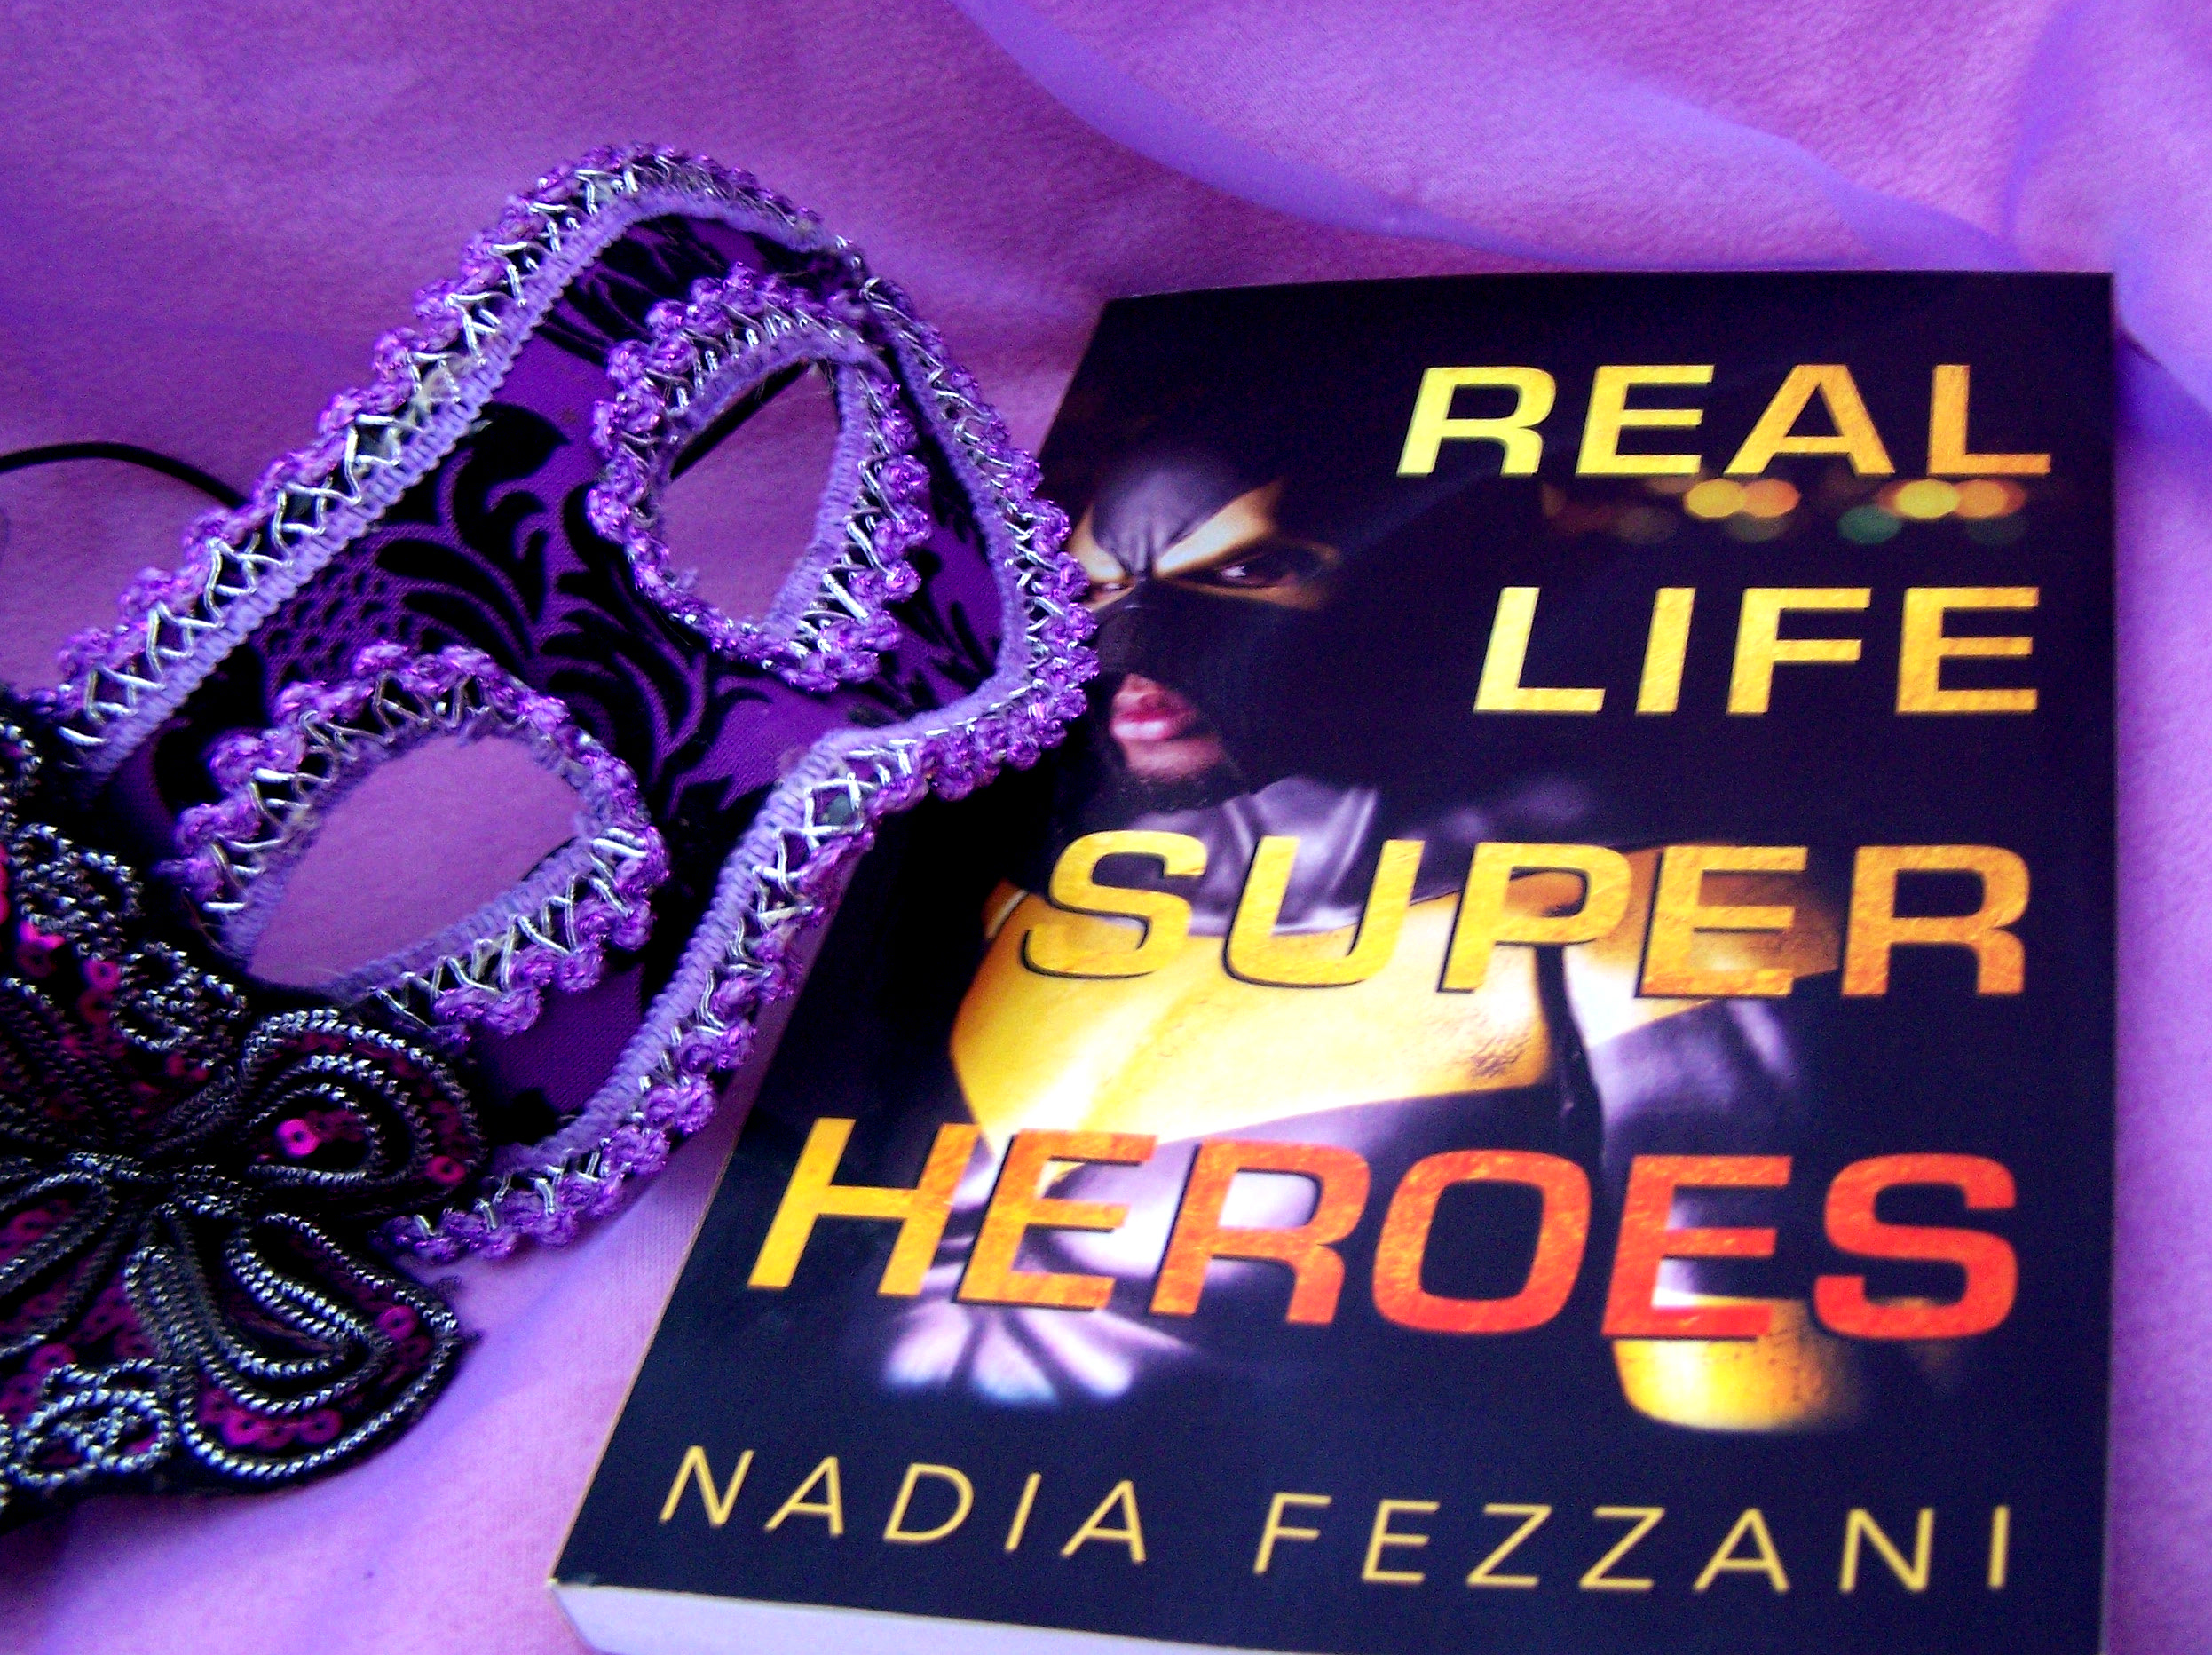 real life super heroes nadia fezzan book books reading giveaways reviews holiday gift guide masks mask non fiction crime real life stories phoenix jones